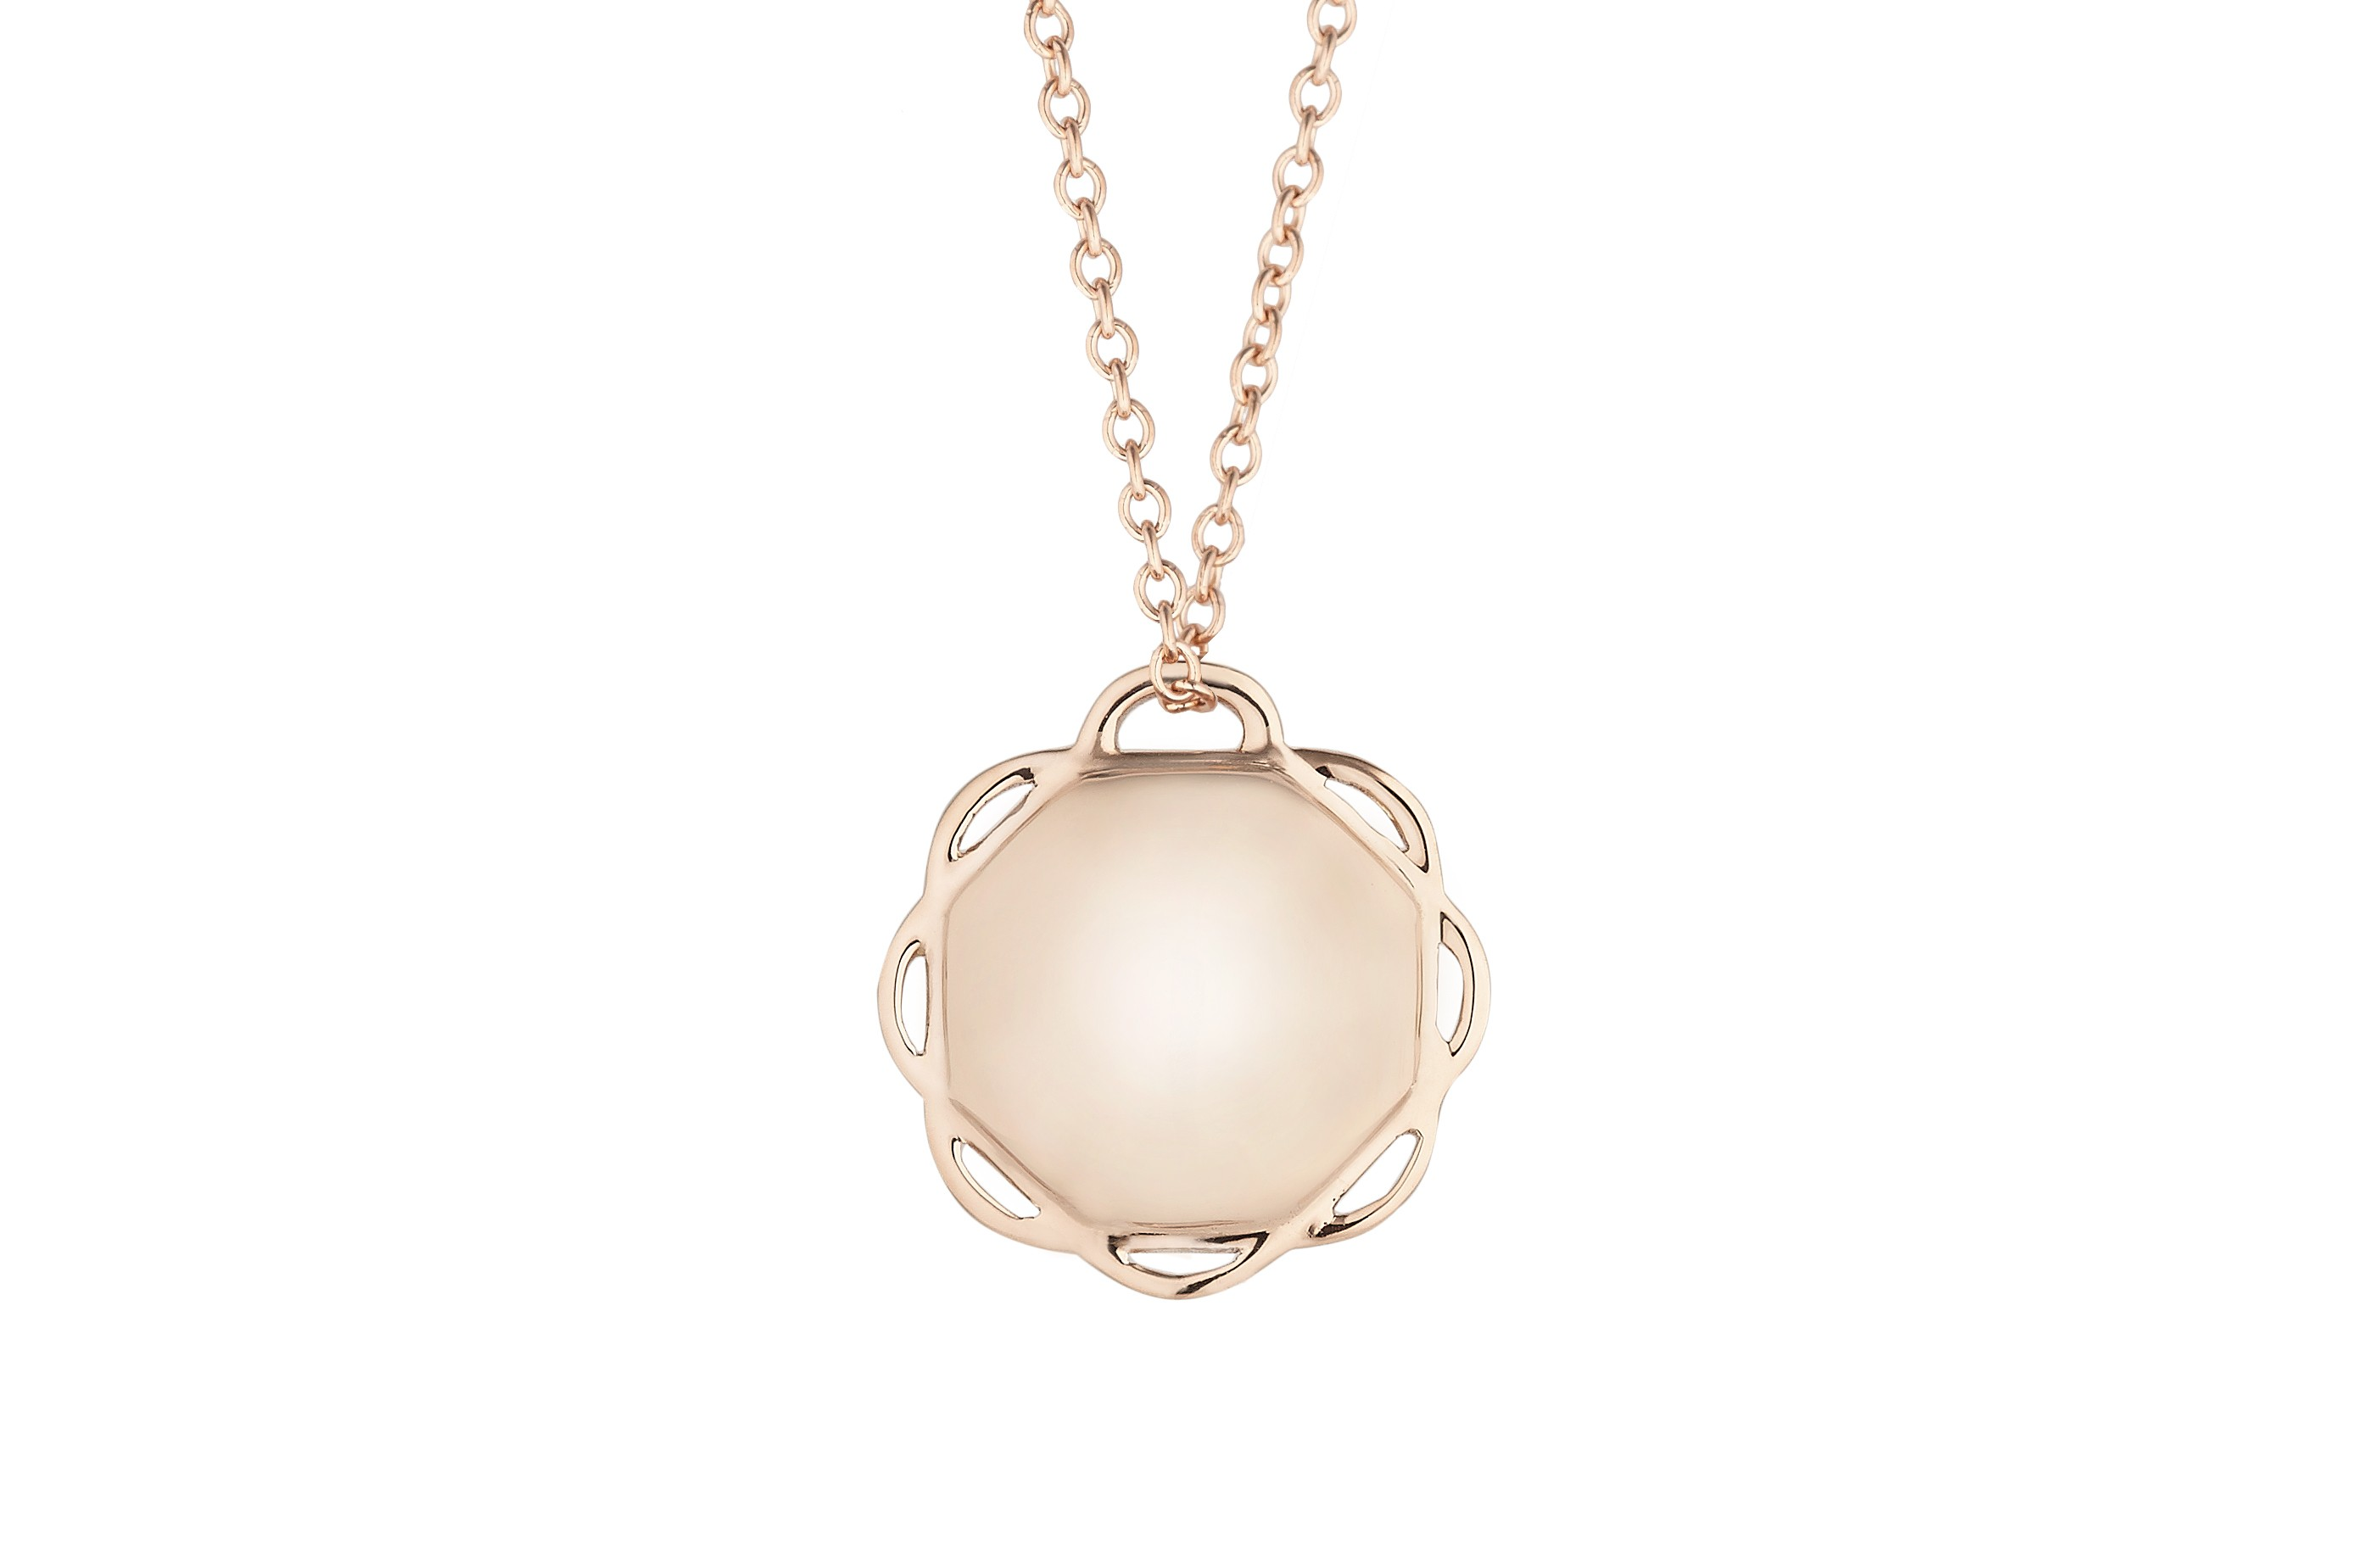 18K Rose Gold Single Circle Flora Pendant on AIDIA Extendable Link Chain